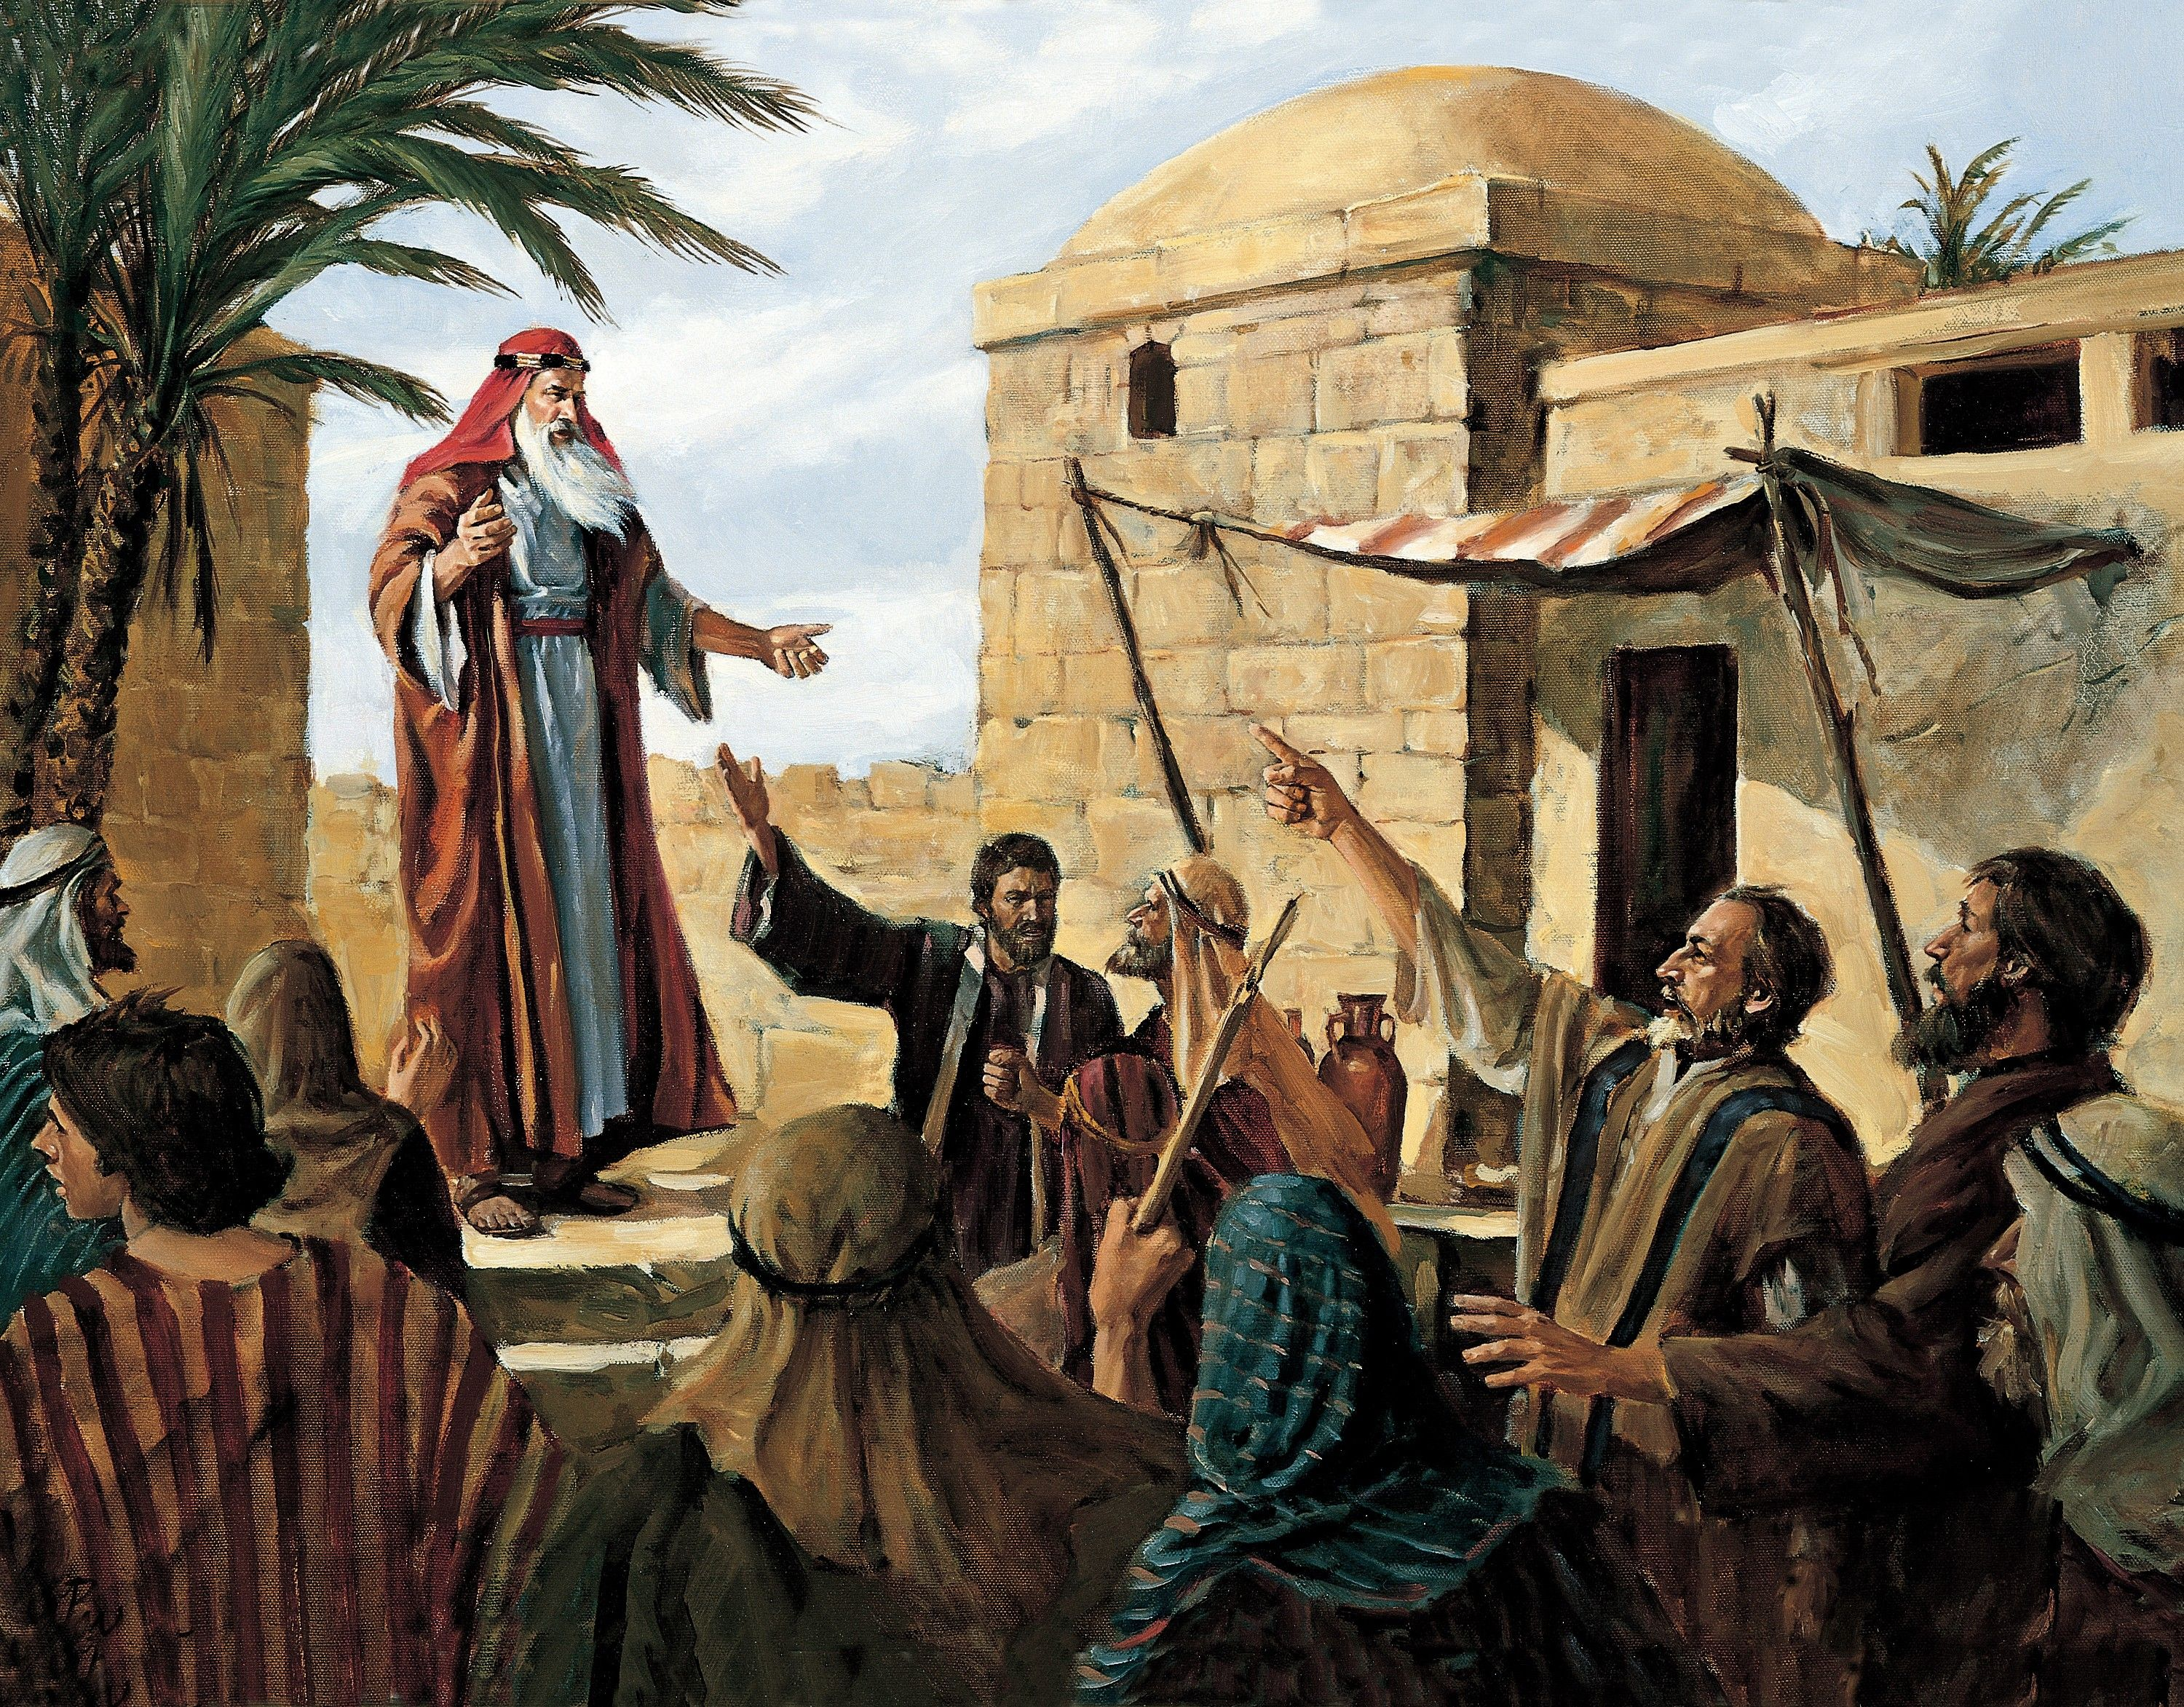 Lehi Prophesying to the People of Jerusalem (Lehi Preaching in Jerusalem), by Del Parson (62517); GAK 300; GAB 67; Primary manual 3-39; Primary manual 4-04; 1 Nephi 1:18–20